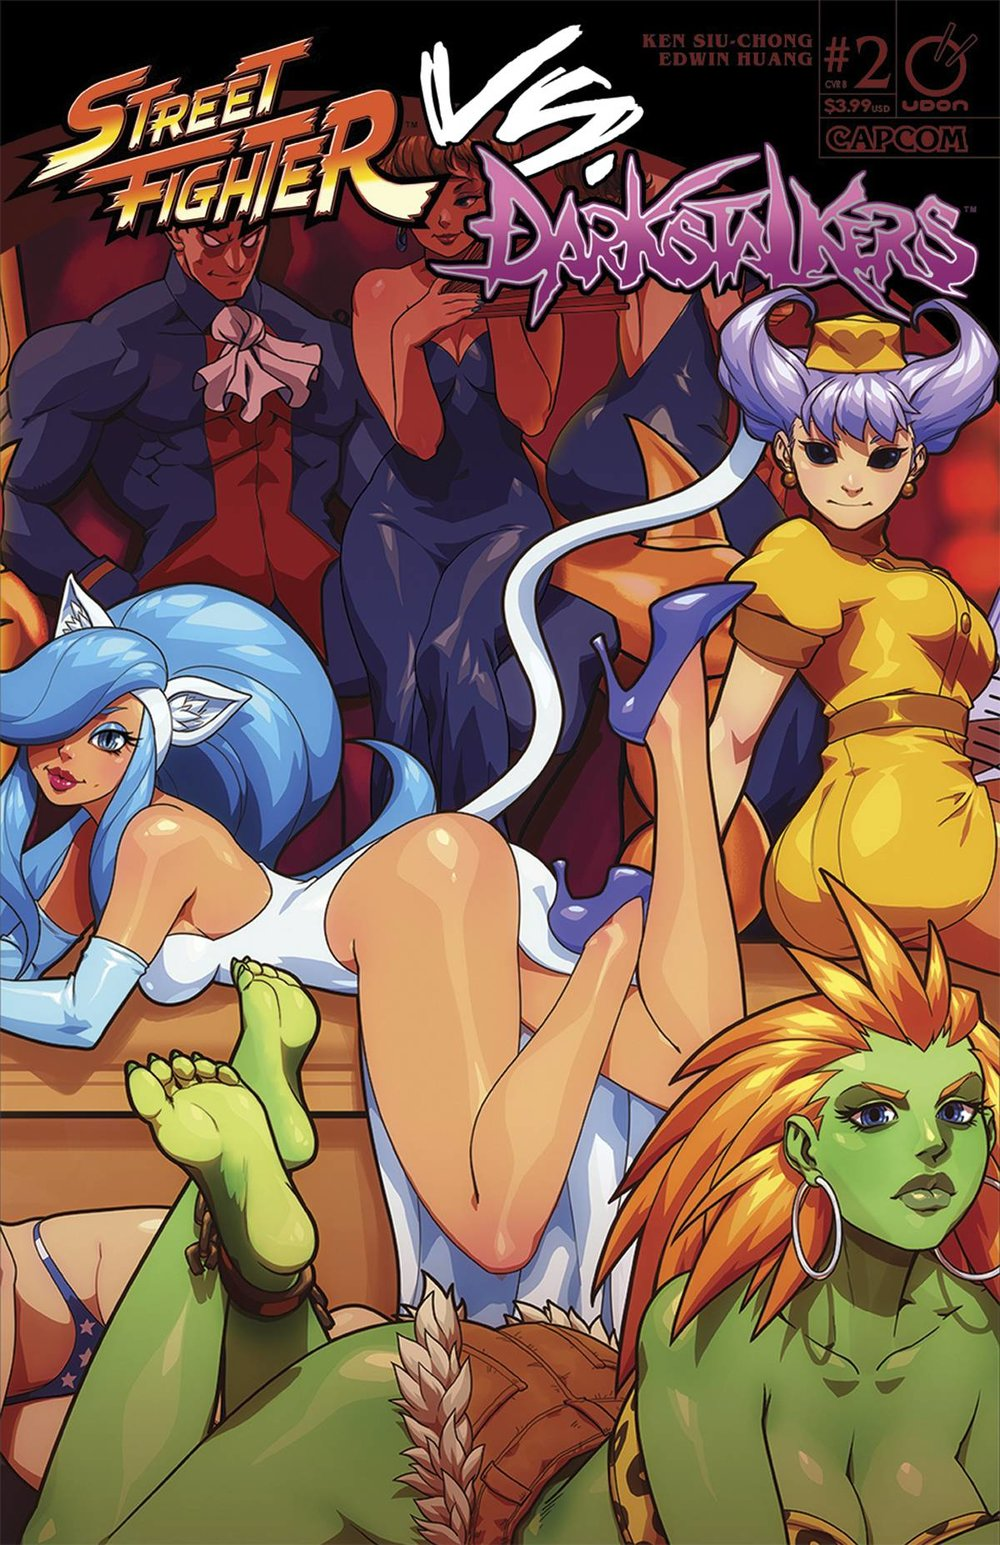 STREET FIGHTER VS DARKSTALKERS 2 of 8 CVR B PORTER.jpg